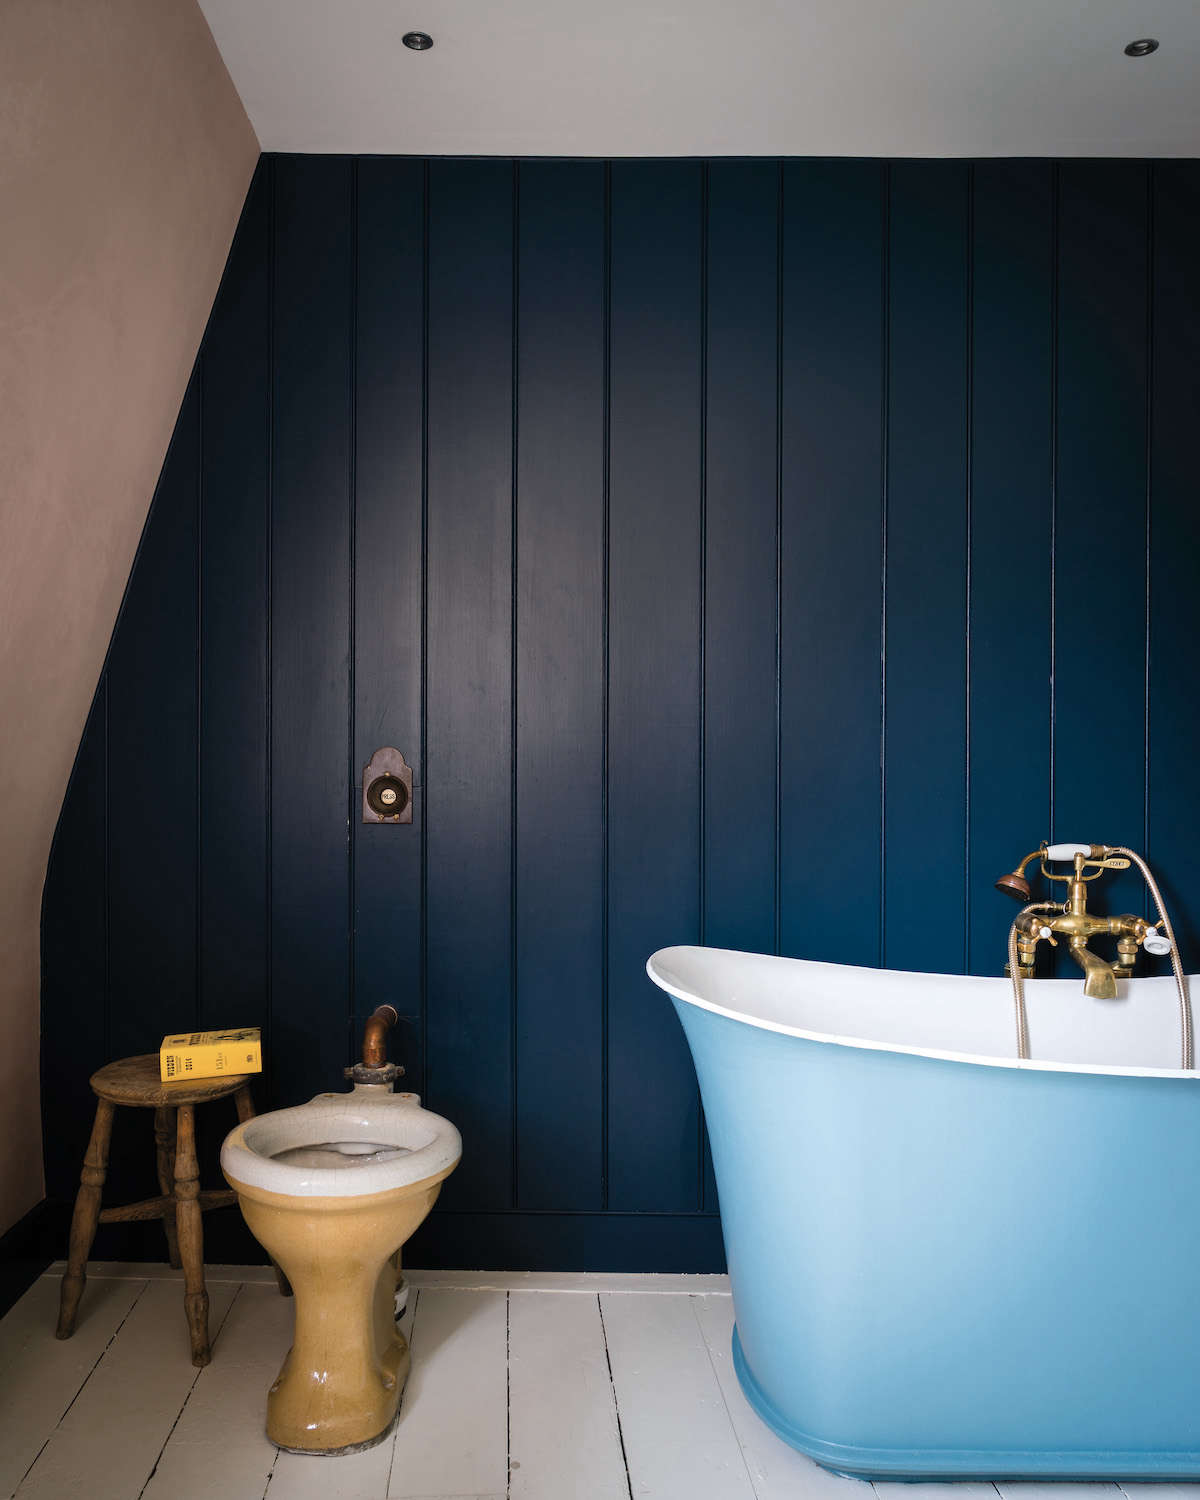 Farrow U0026 Ball Book, How To Decorate: Bathroom With Pink And Navy Blue Paint